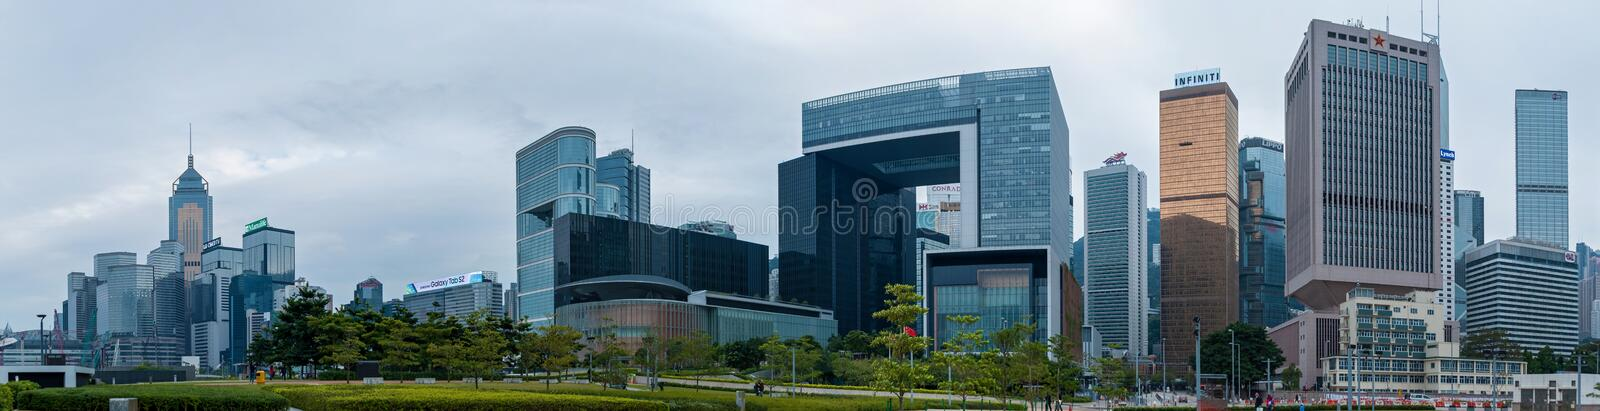 Hong Kong Corporate Buildings immagine stock